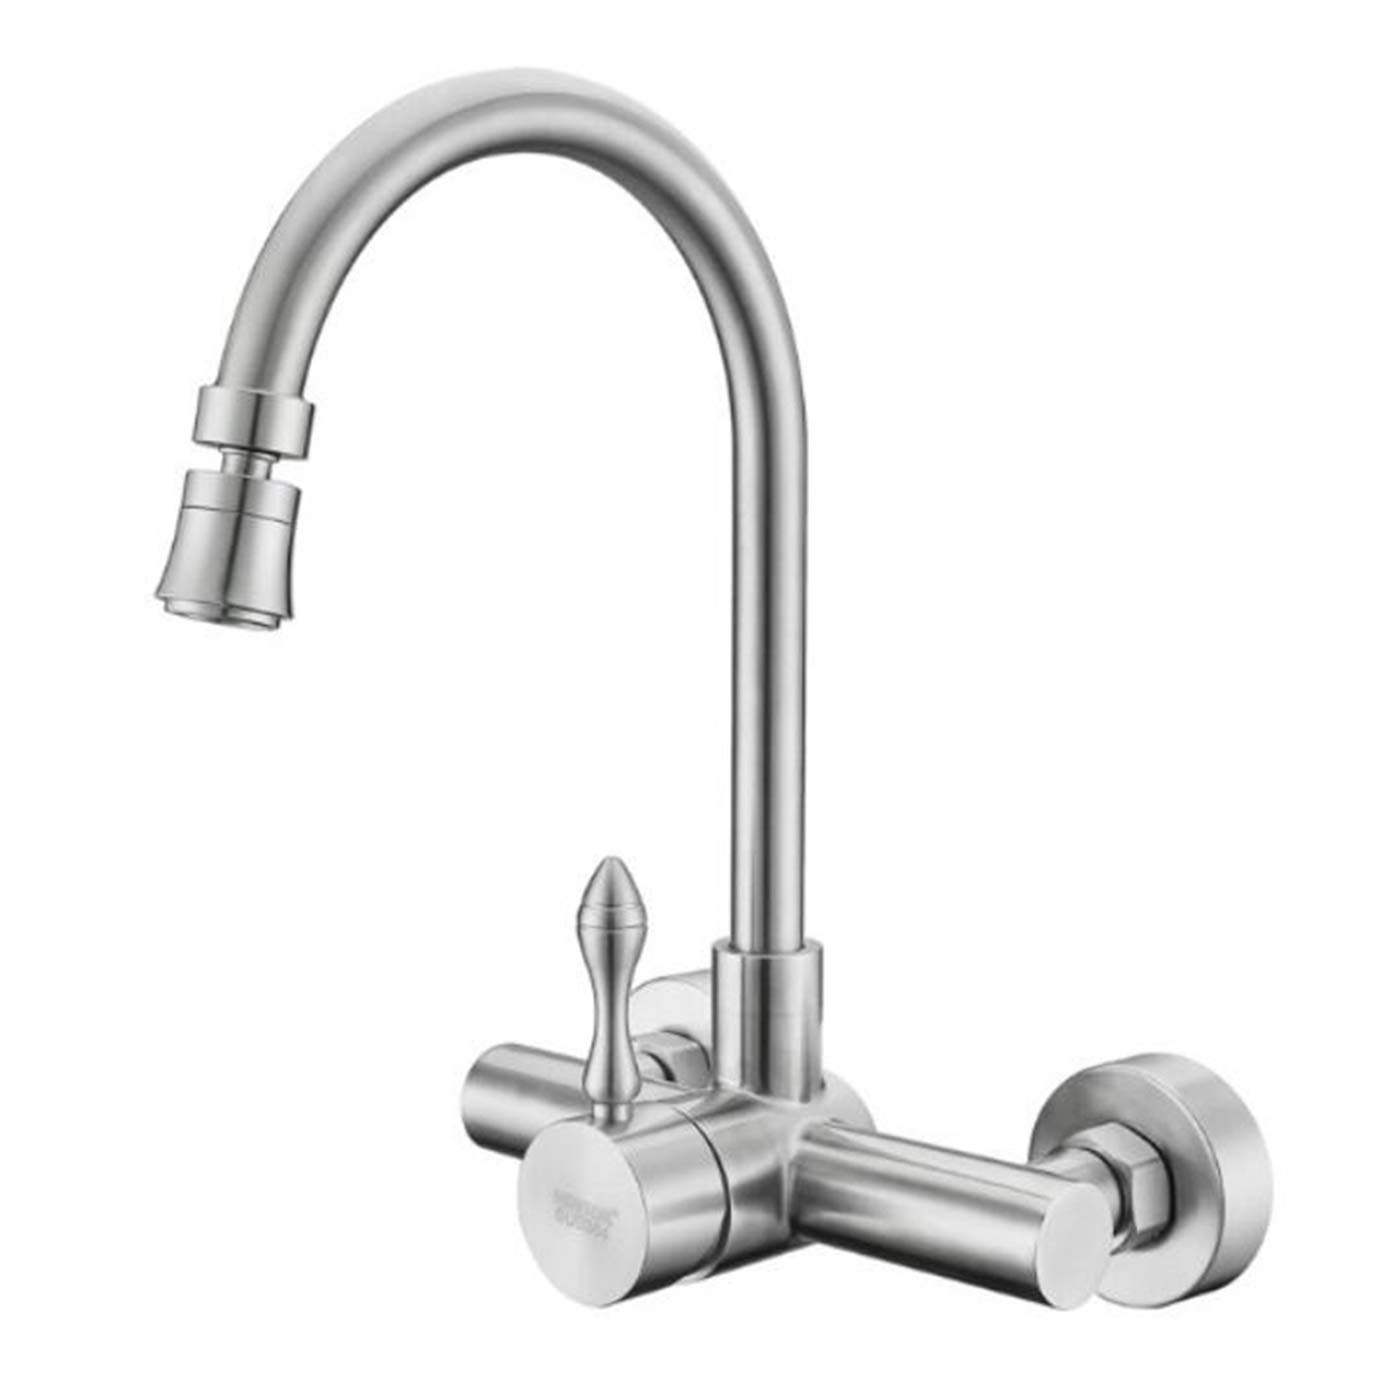 304 Stainless Steel Into Wall Kitchen Cold Hot Water Faucet Wash Basin Water Trough Washing Pool Balcony Rotatable Tap,B